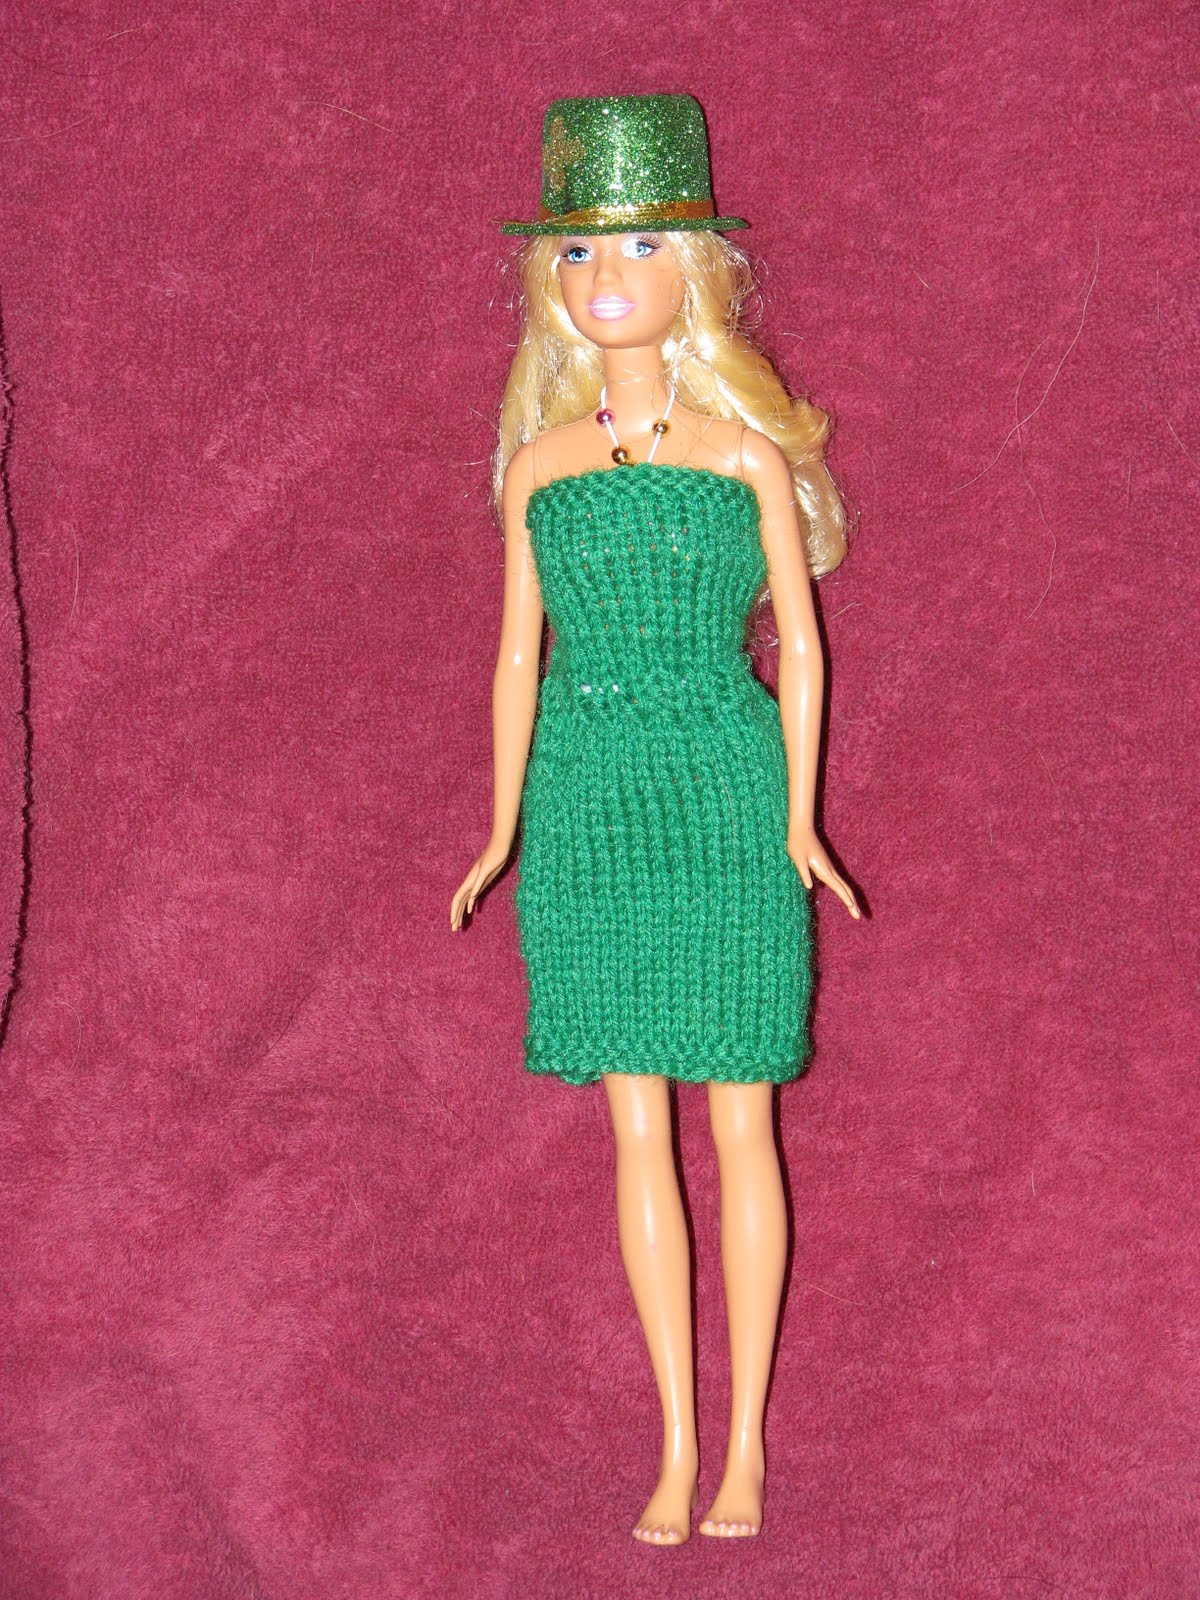 Free Fashion Clipart: Craft Attic Resources: Barbie And Fashion Doll Free